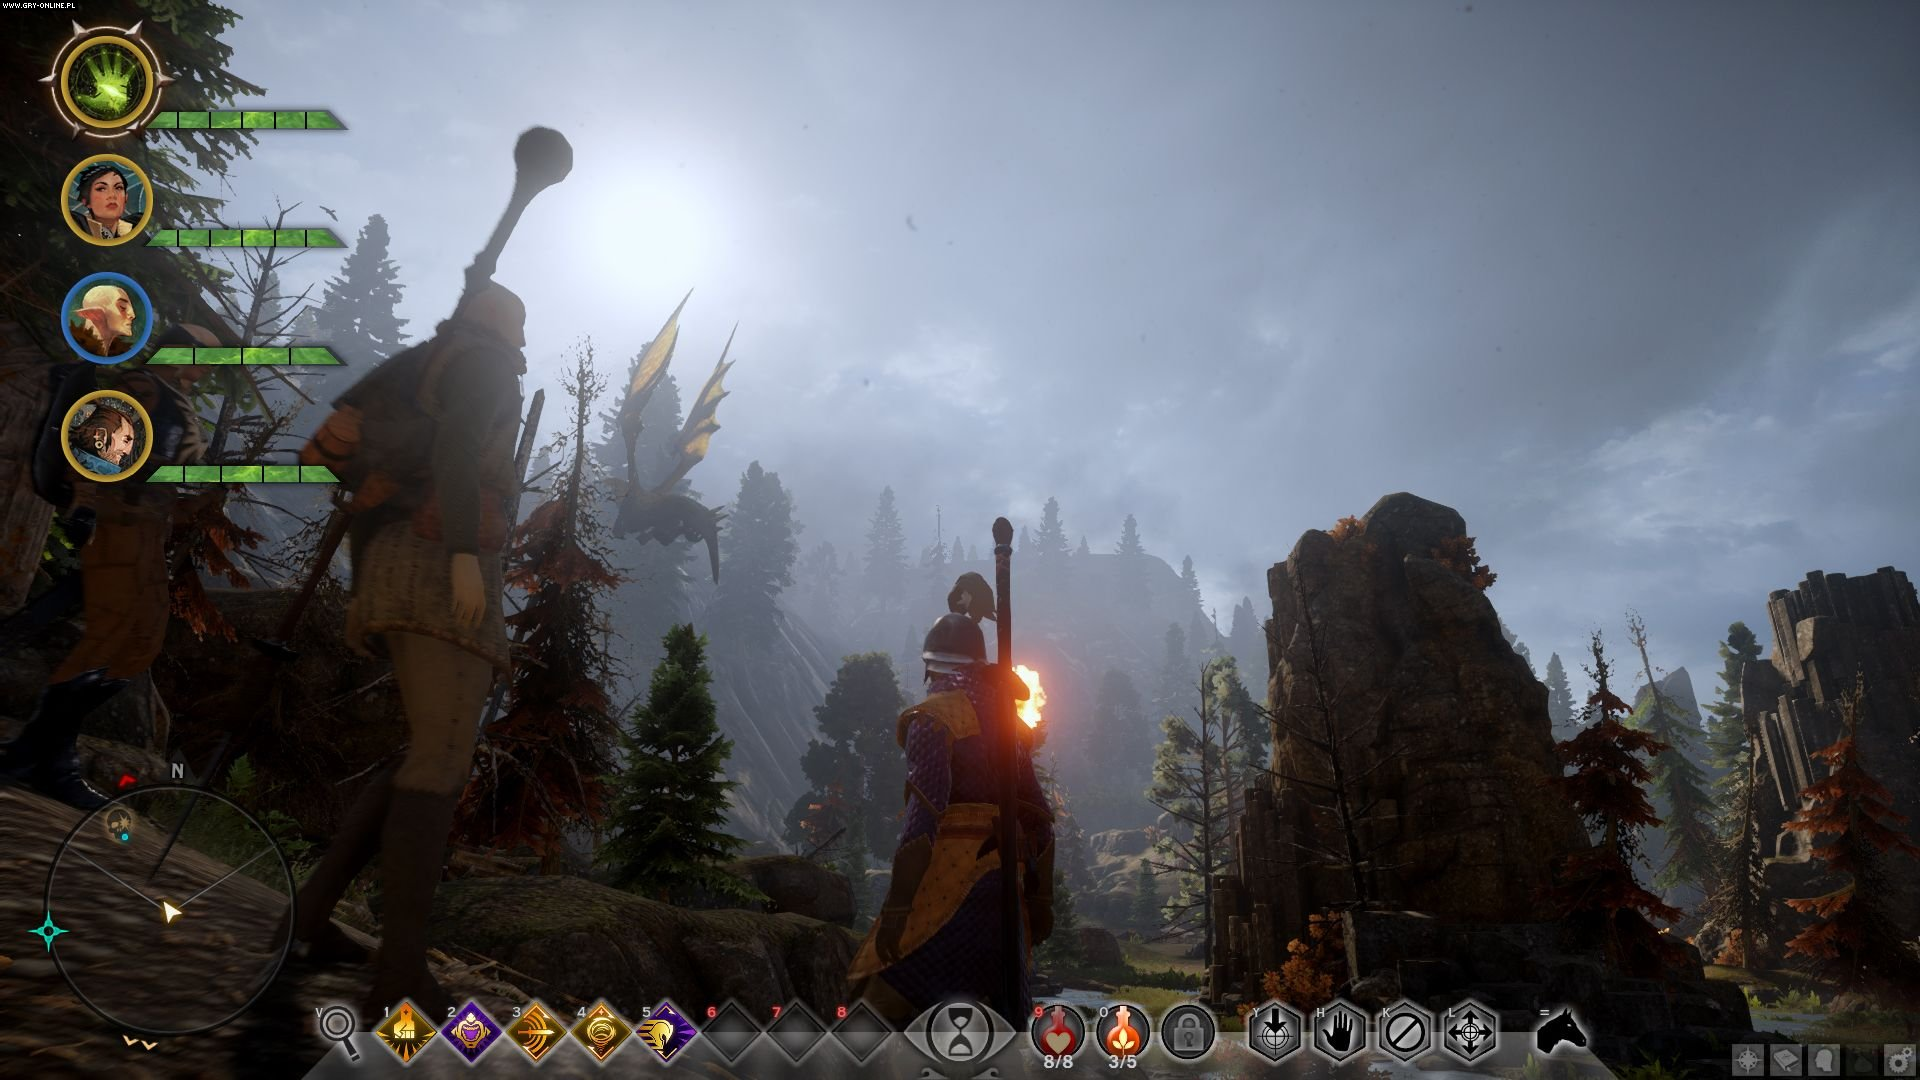 Dragon Age: Inquisition PC, X360, PS3 Games Image 6/225, BioWare Corporation, Electronic Arts Inc.